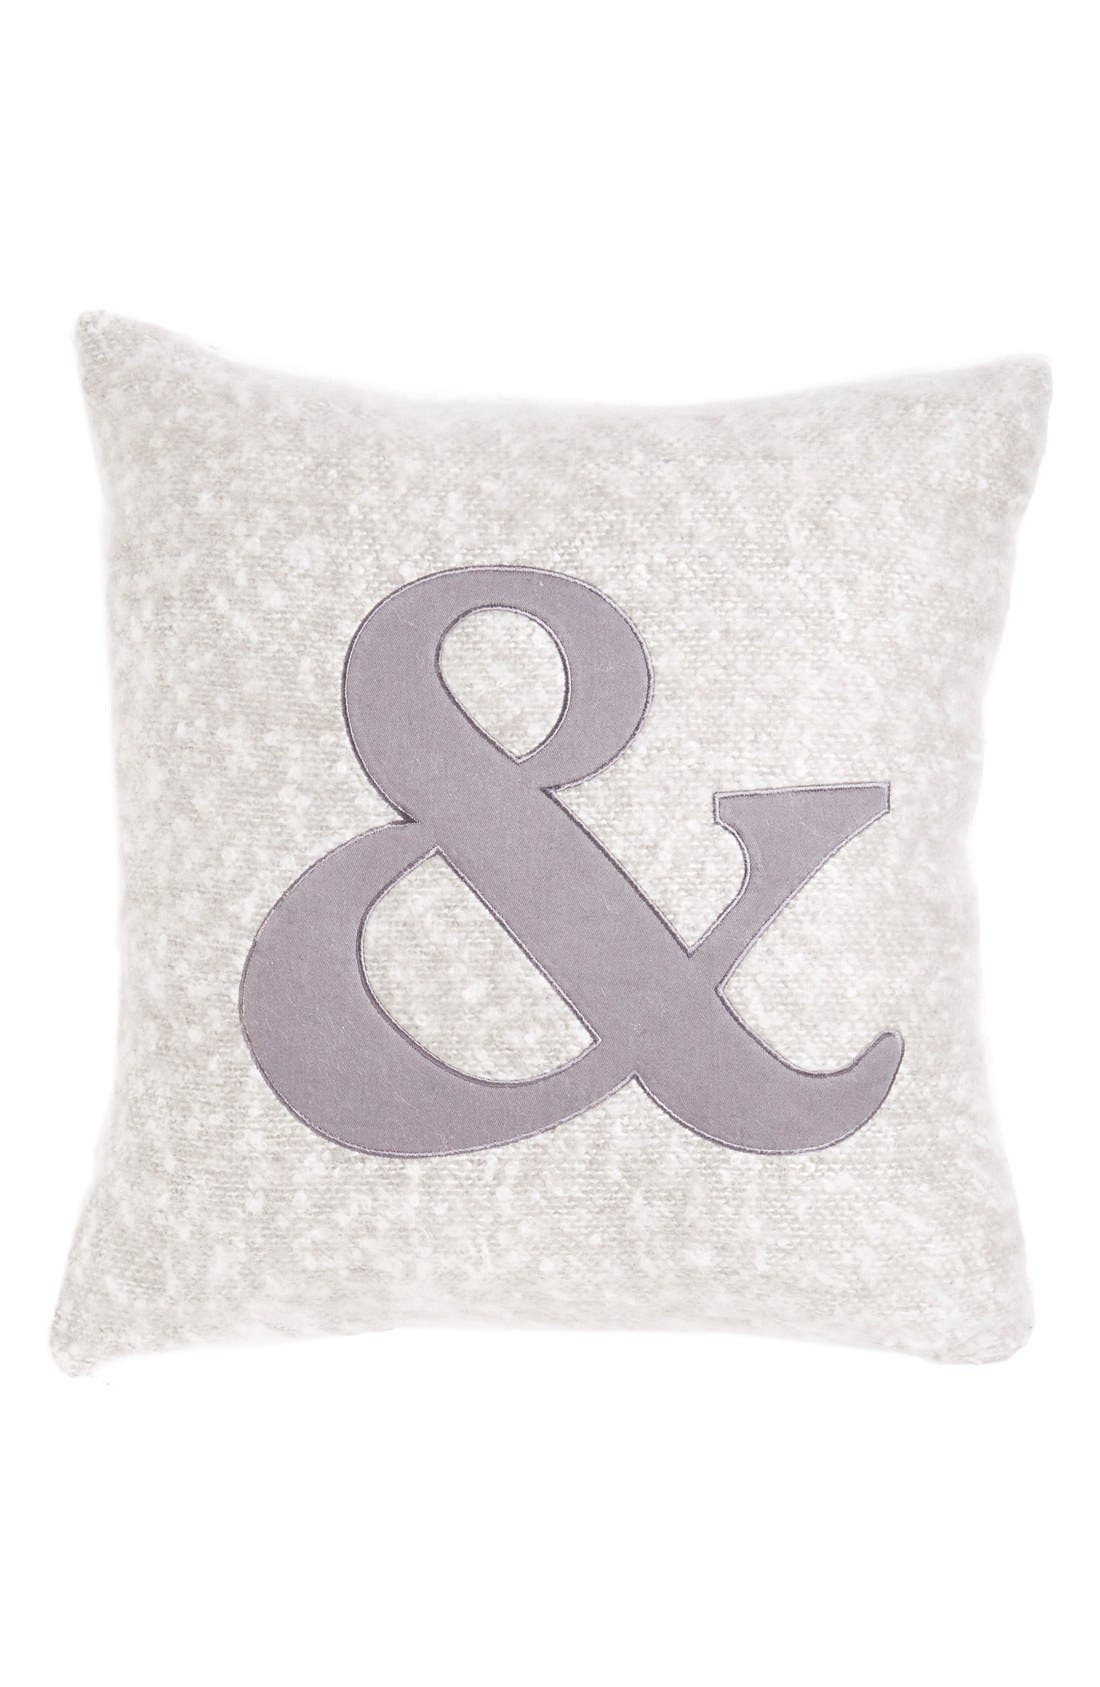 Alternate Image 1 Selected - Nordstrom at Home Monogram ColorblockPillow